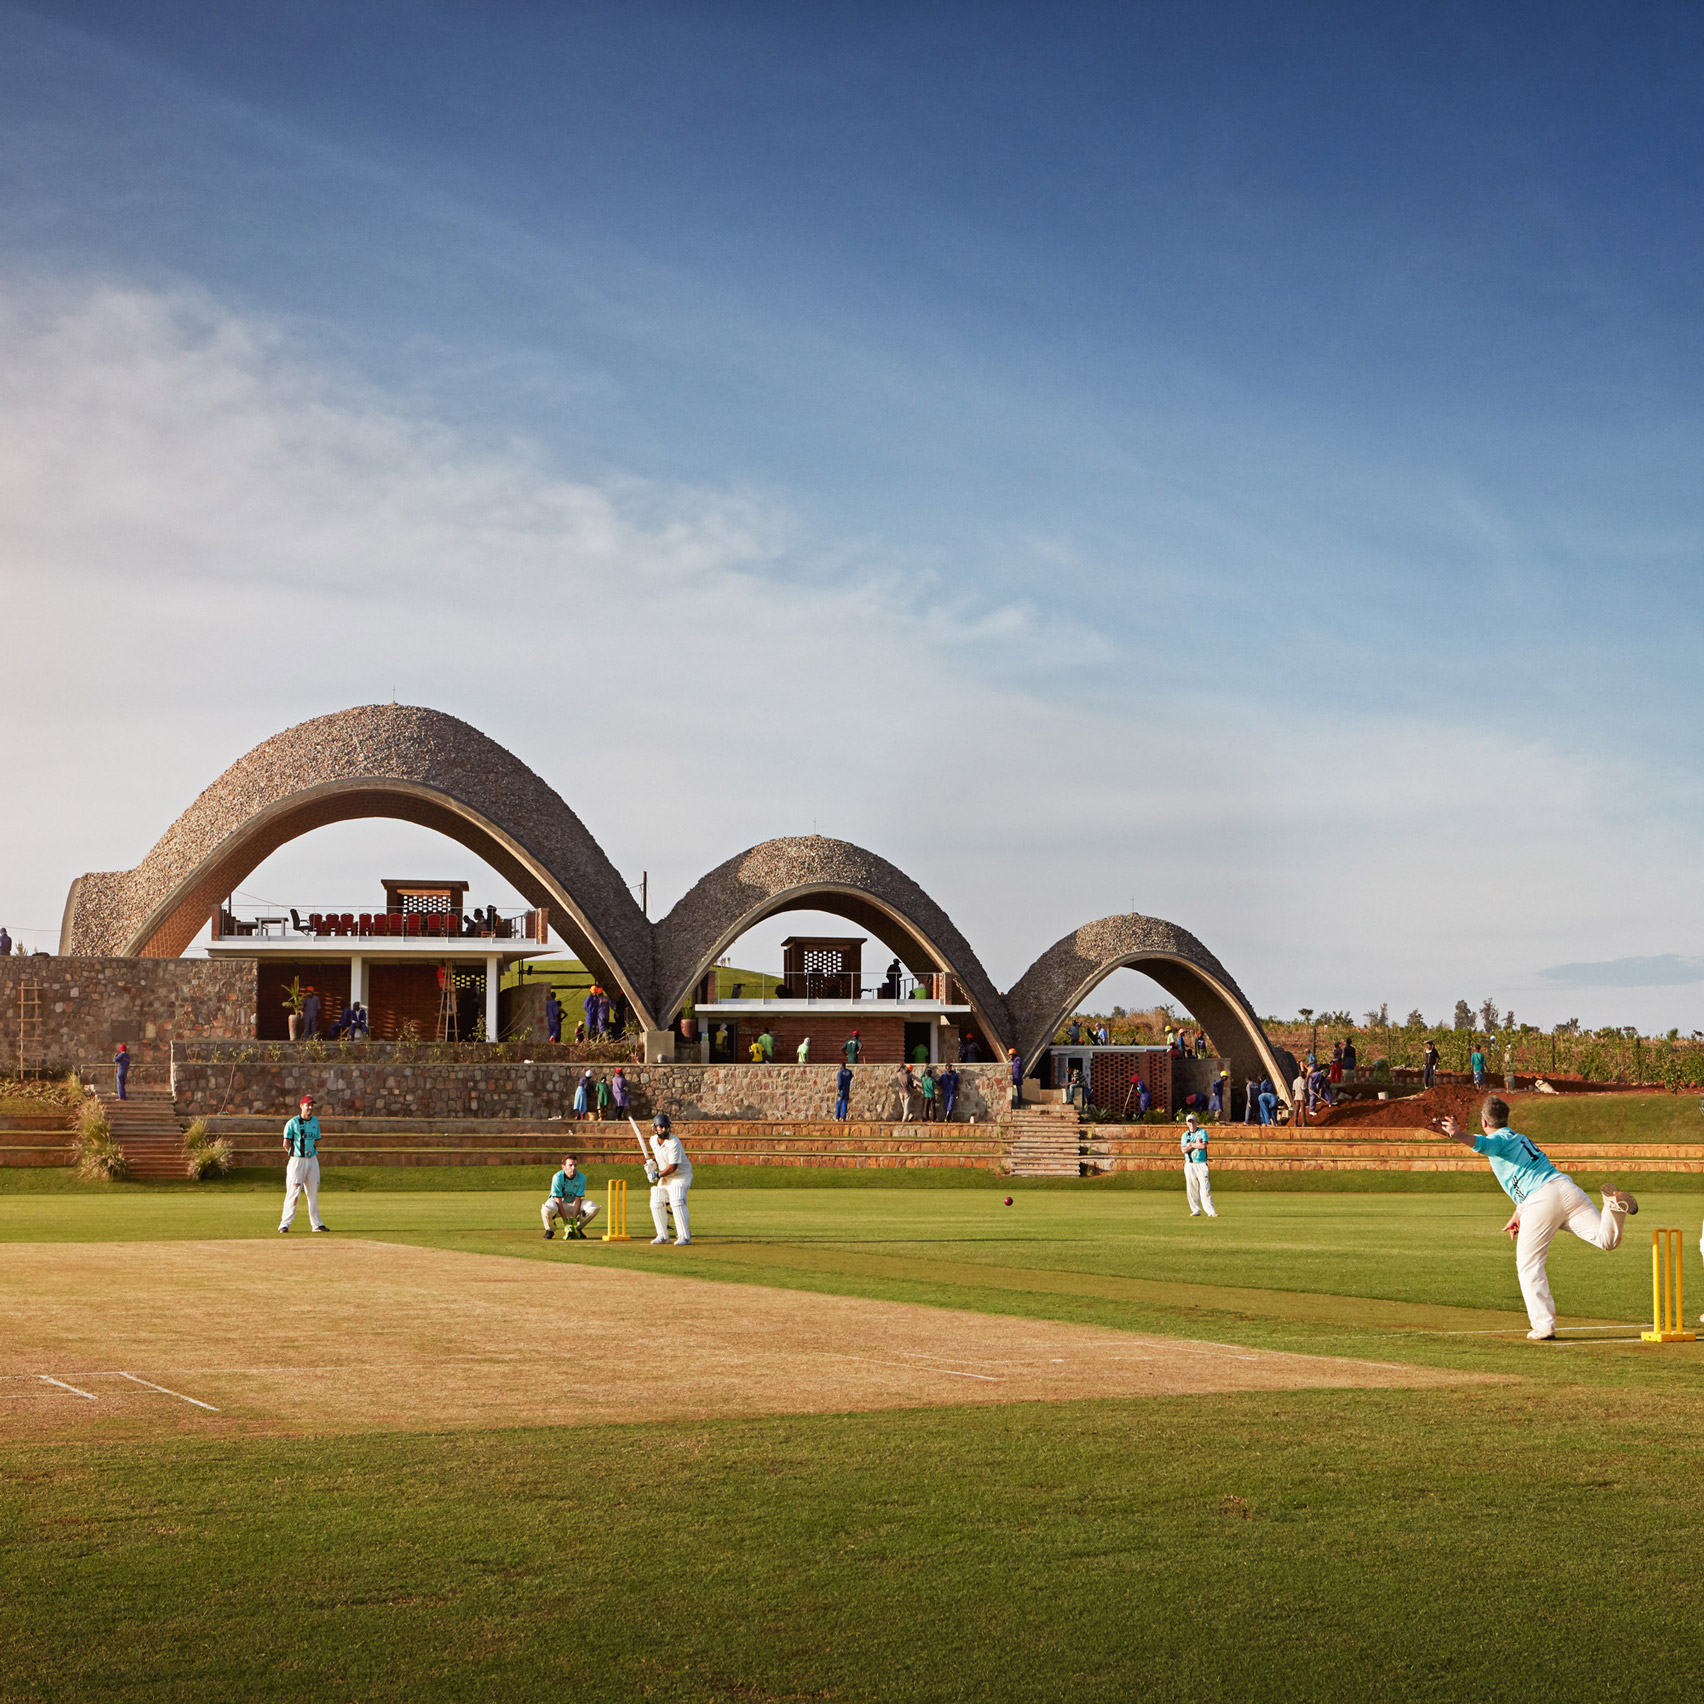 Light Earth Designs creates sustainable cricket pavilion featuring  self-supporting parabolic roofs